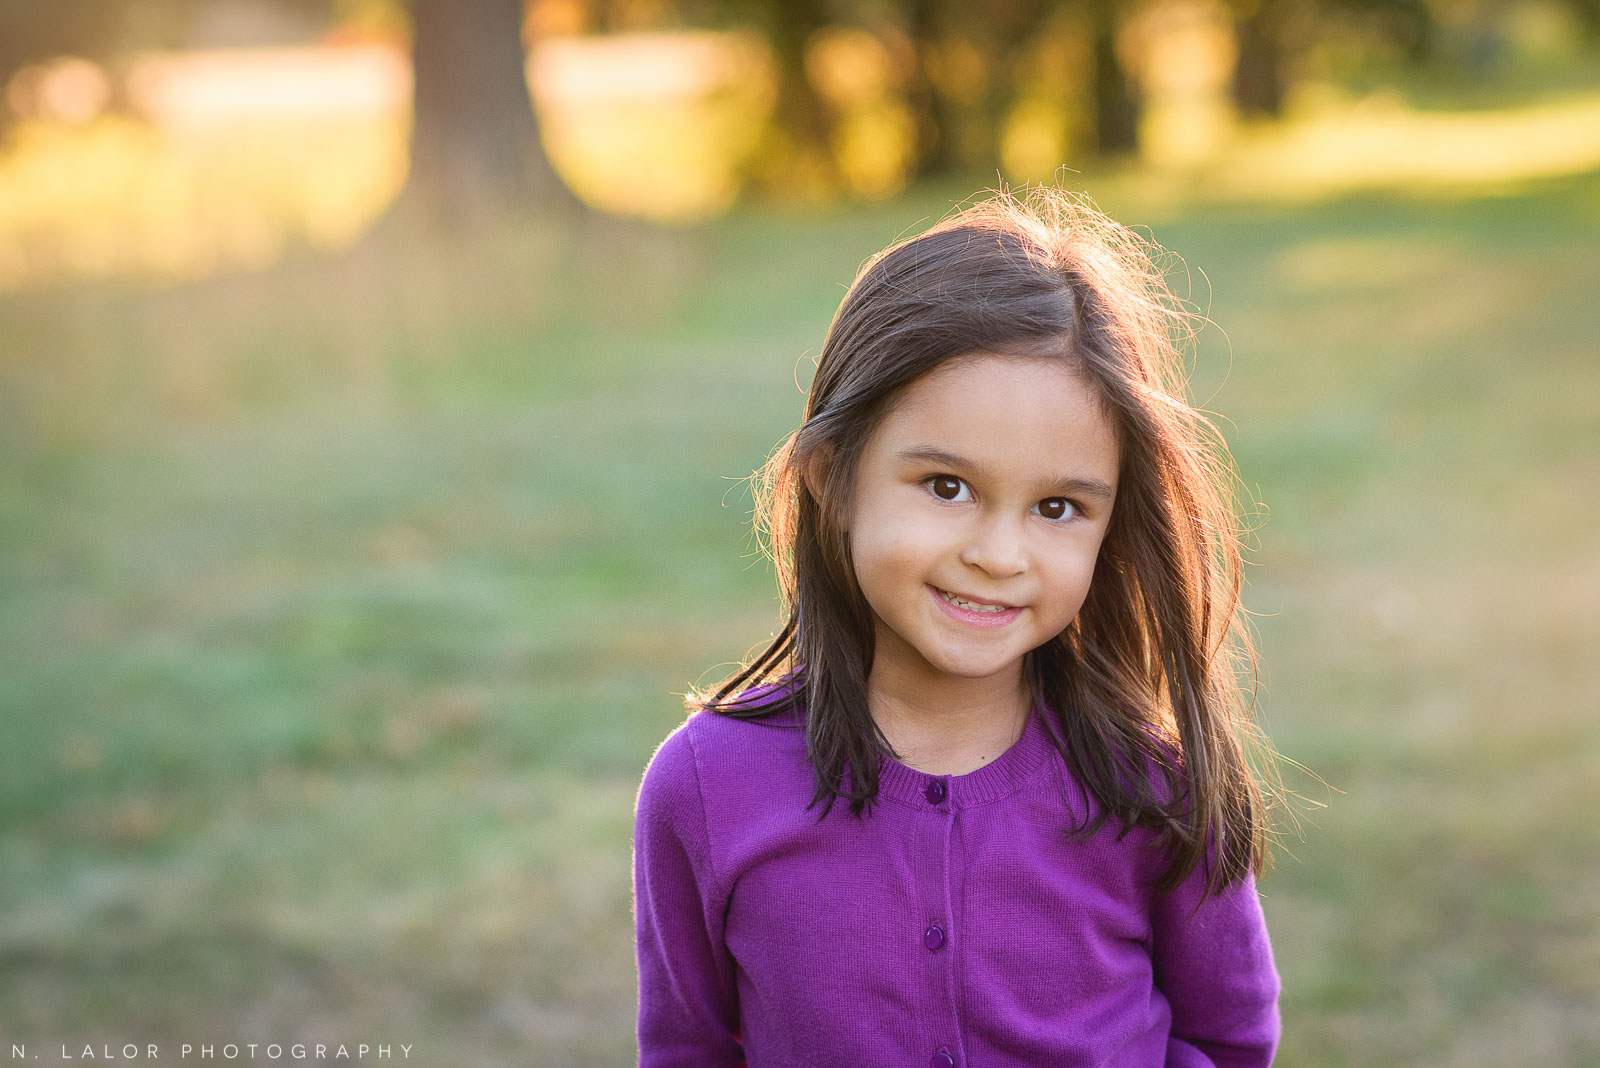 Sweet portrait of a 5-year old girl during the golden hour at Waveny Park. Photo by N. Lalor Photography.